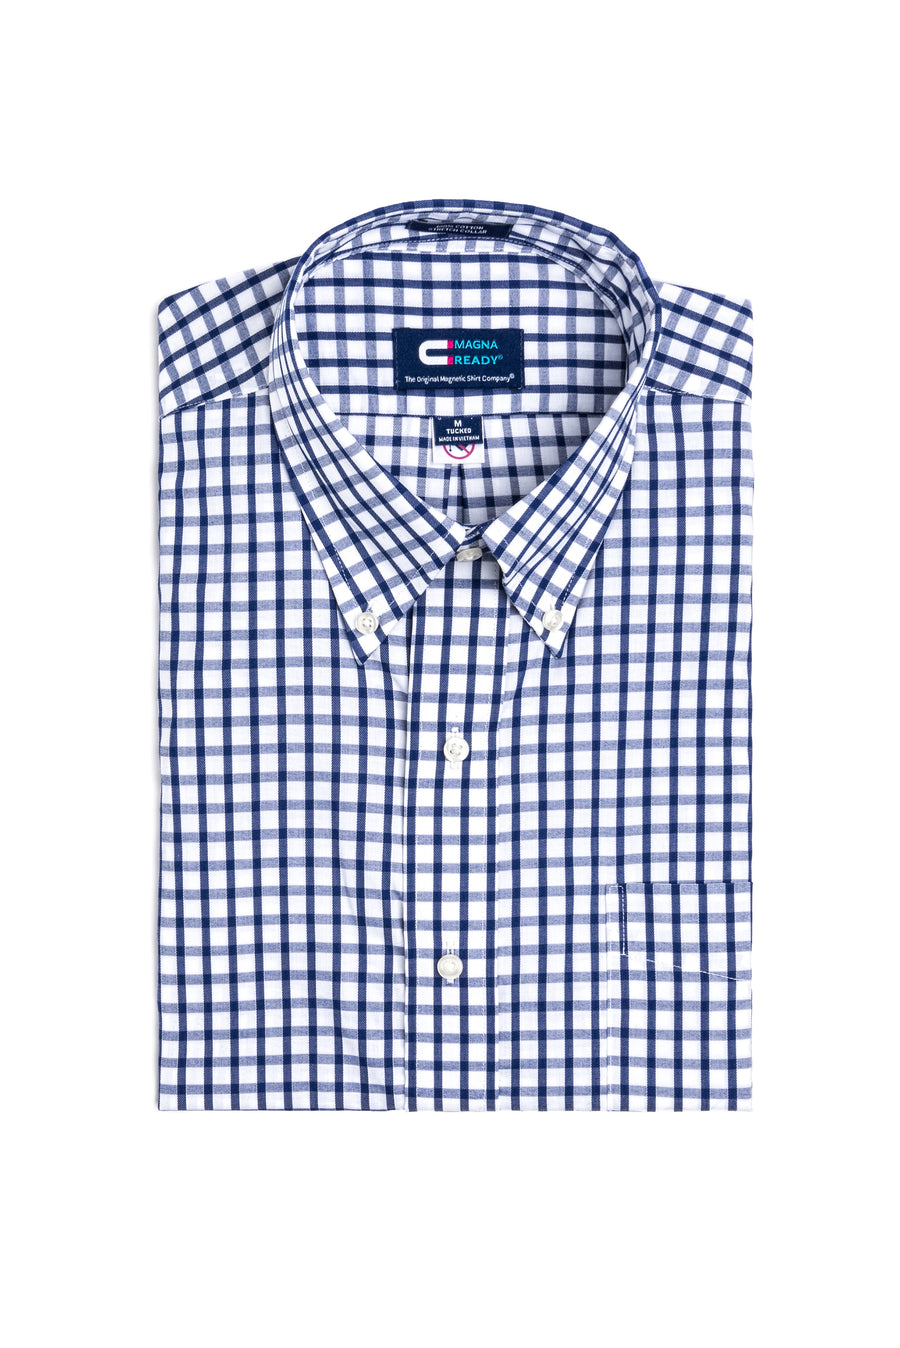 Navy and White Grid Check Long Sleeve Shirt with Magnetic Closures